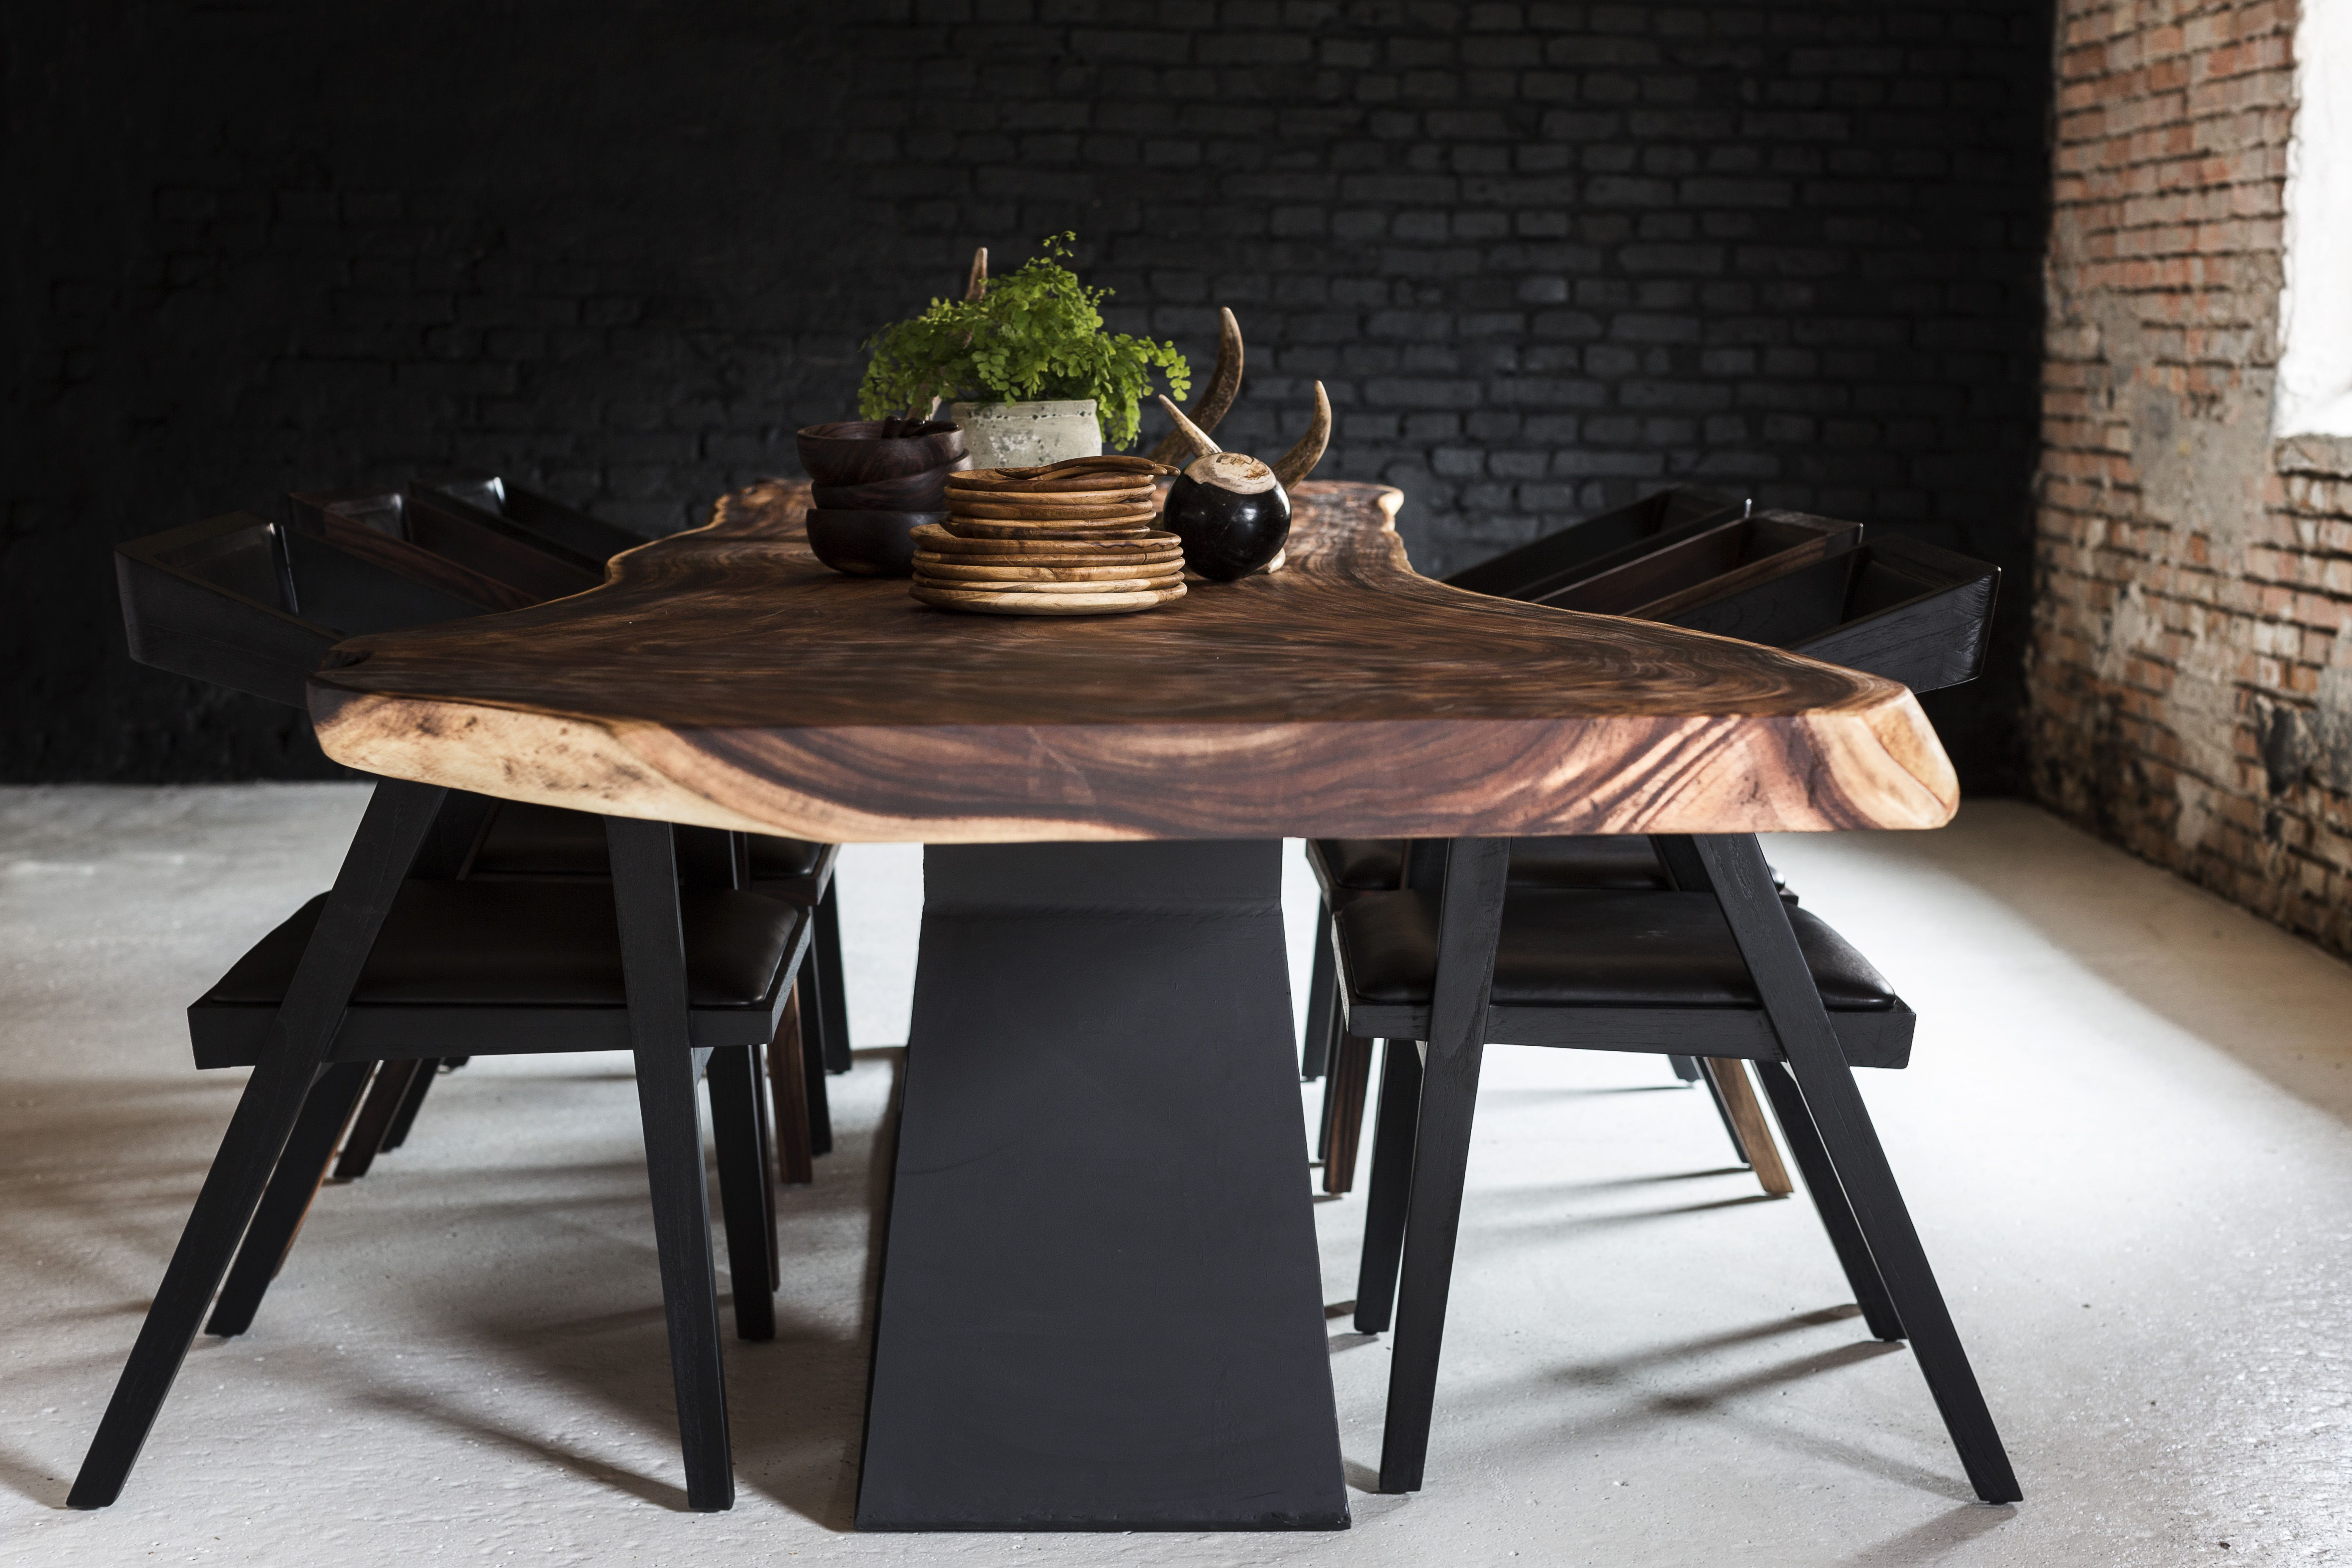 Formel Wood Table Done In Exotic Wood Called Suar#trembesi#monkeypod#